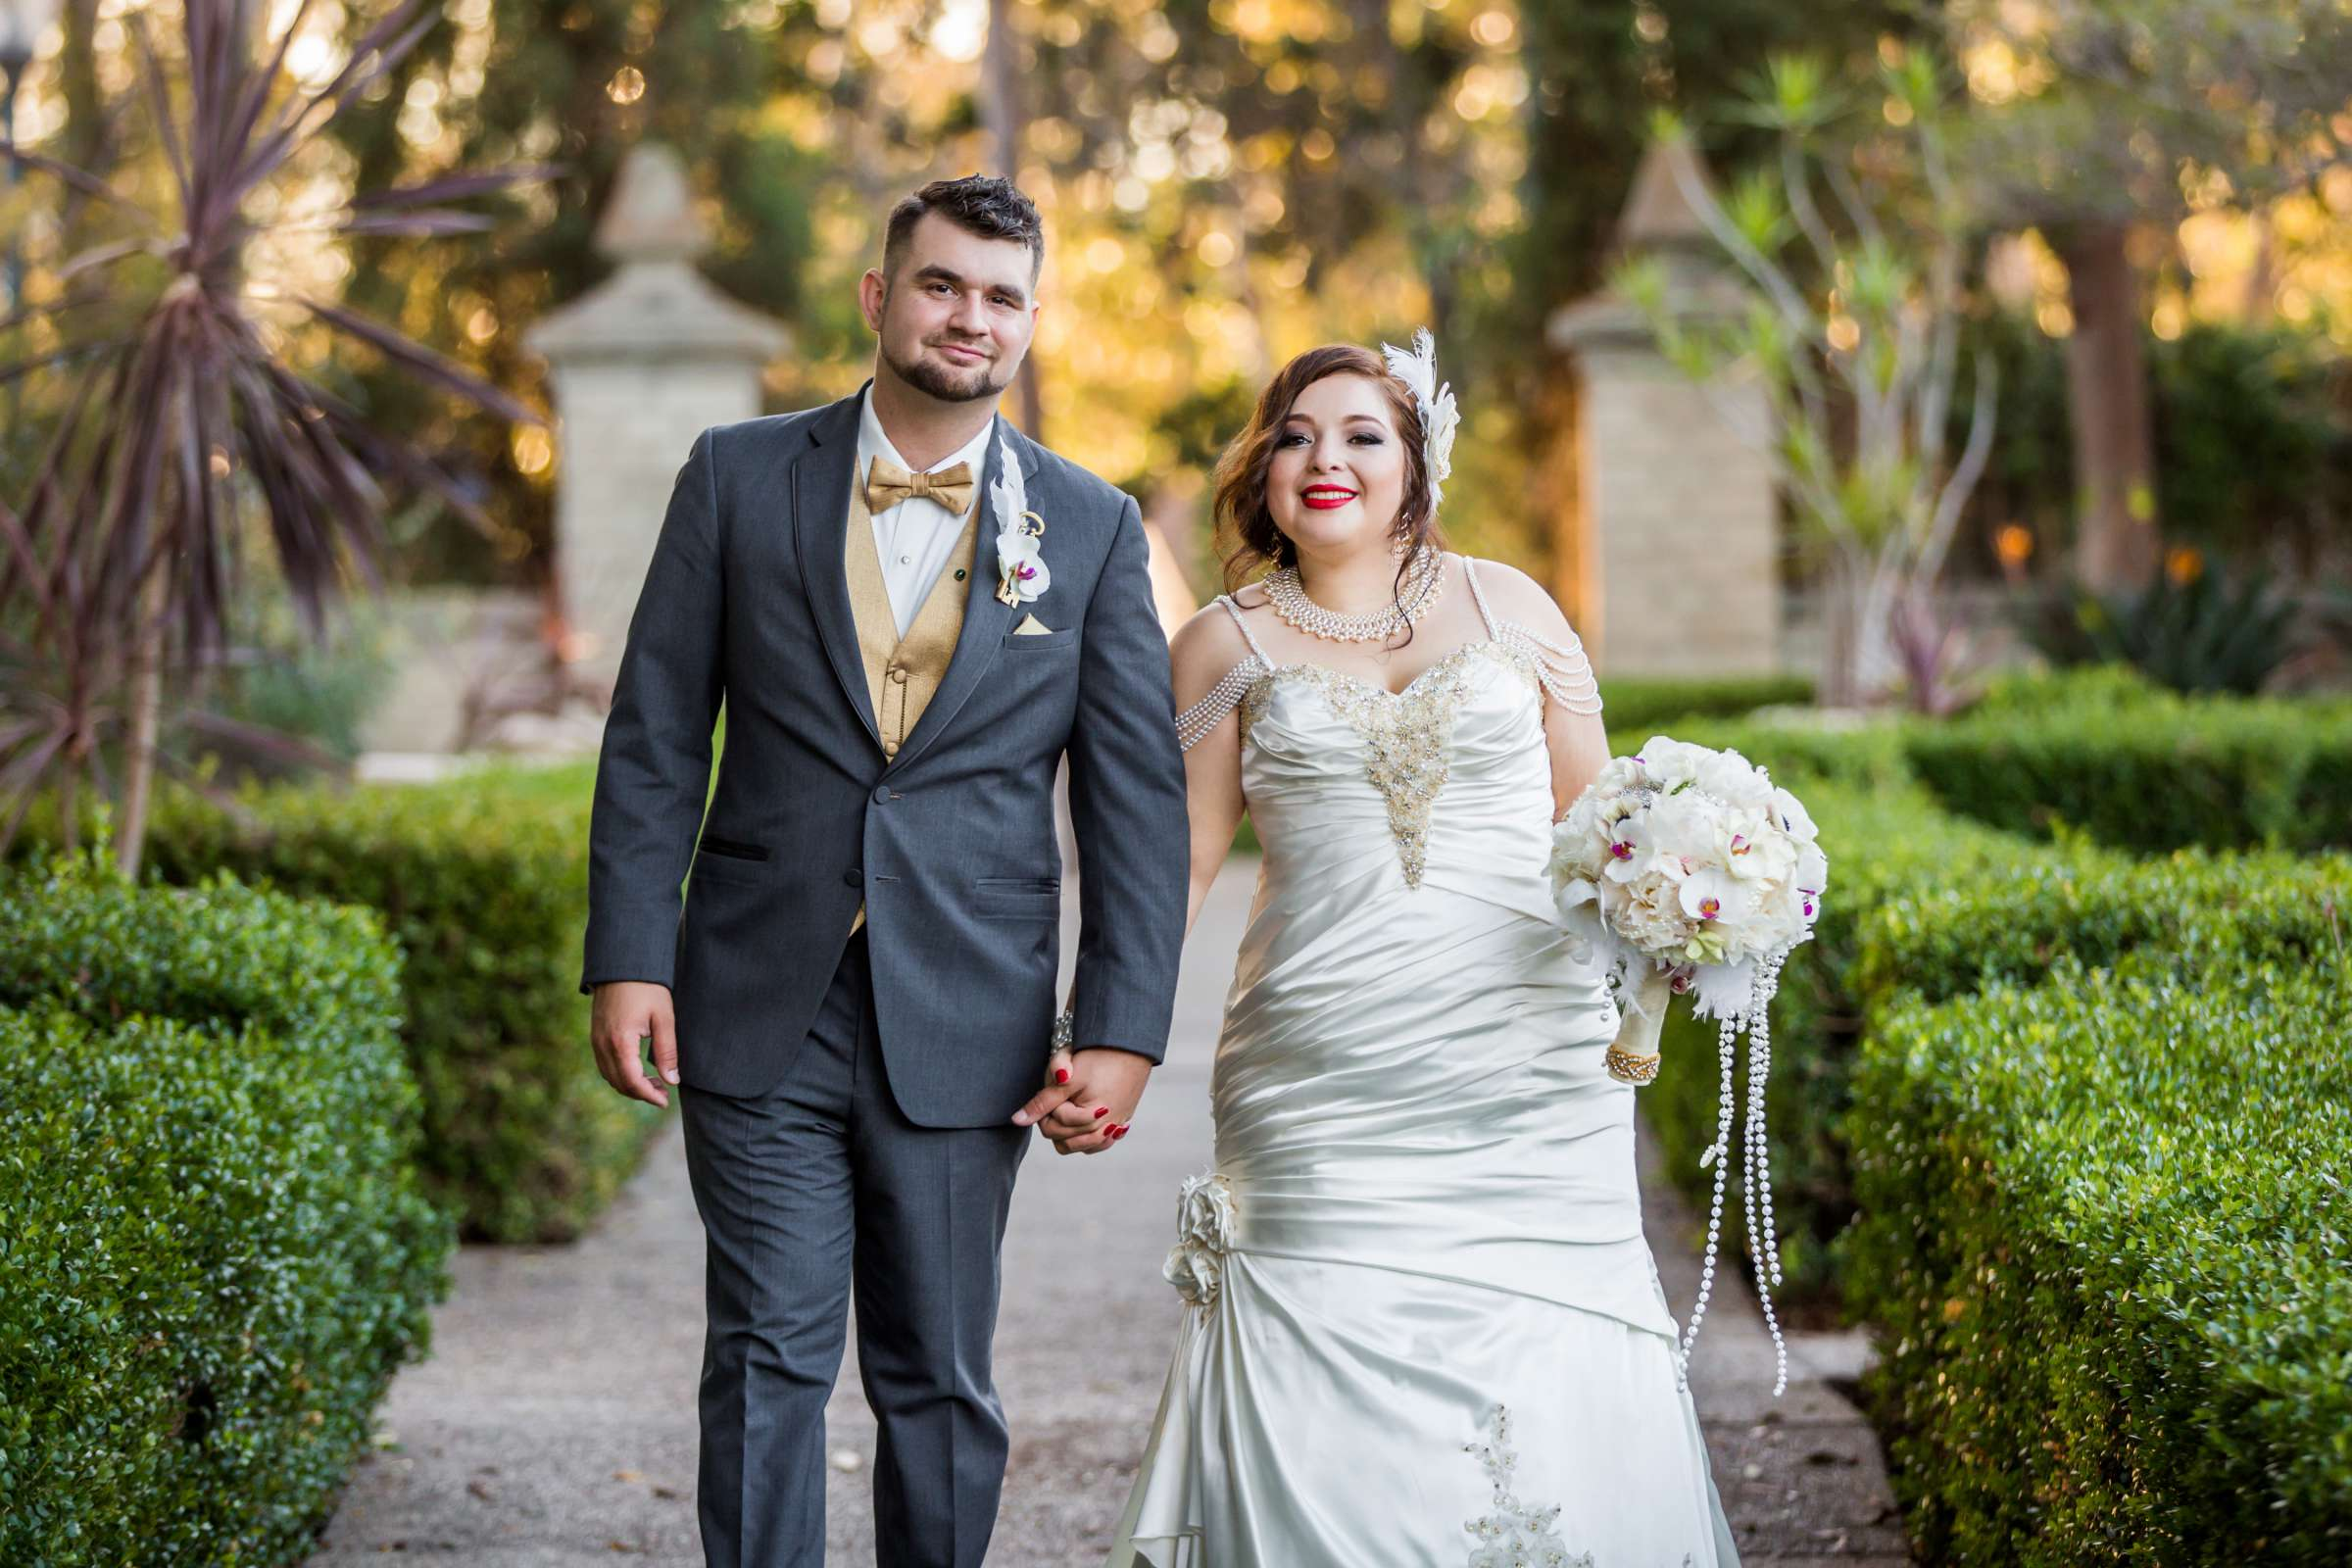 The Prado Wedding coordinated by Breezy Day Weddings, Aalis and Michael Wedding Photo #15 by True Photography